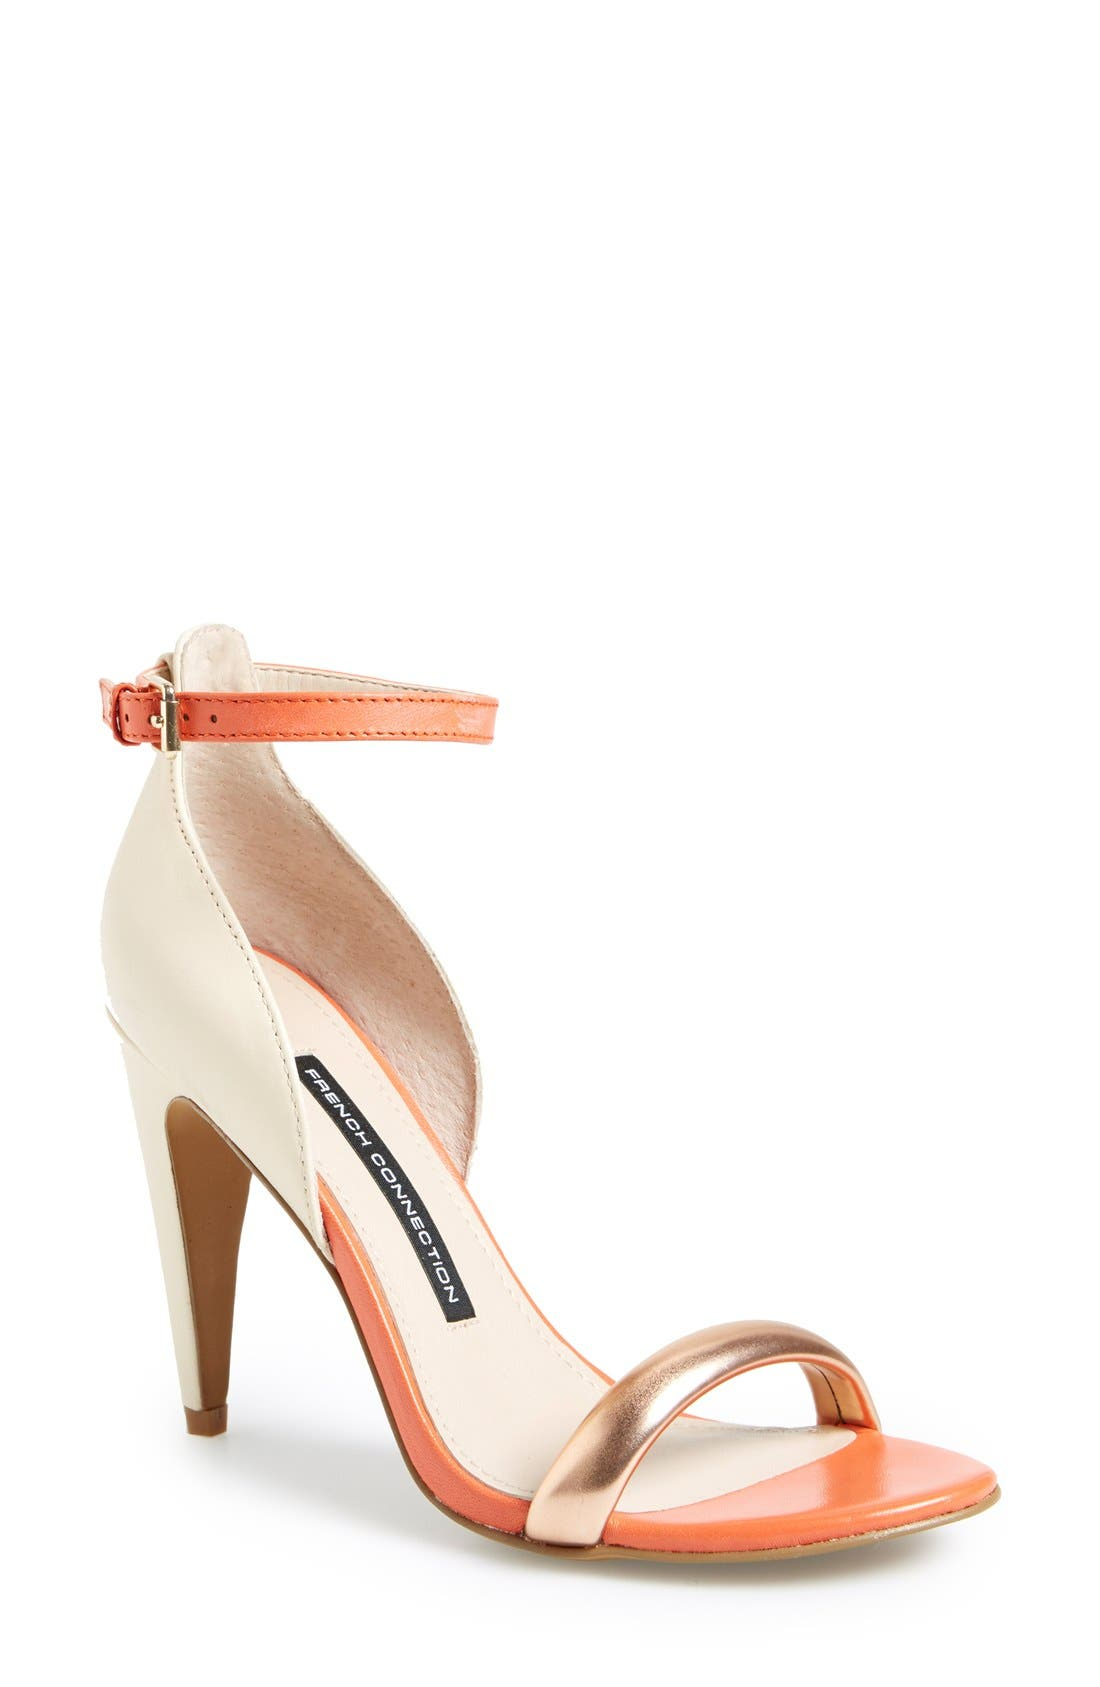 Alternate Image 1 Selected - French Connection 'Nanette' Ankle Strap Sandal (Women)